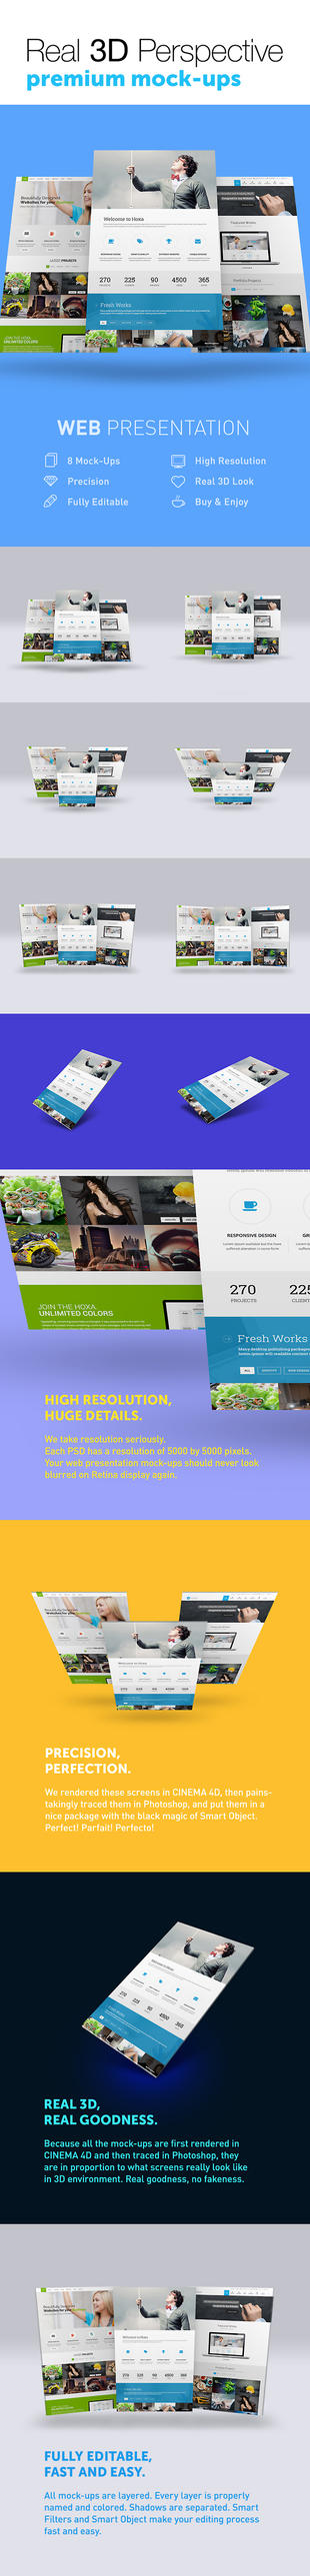 8 Real 3D Web Presentation Mock-Ups by jamiefang